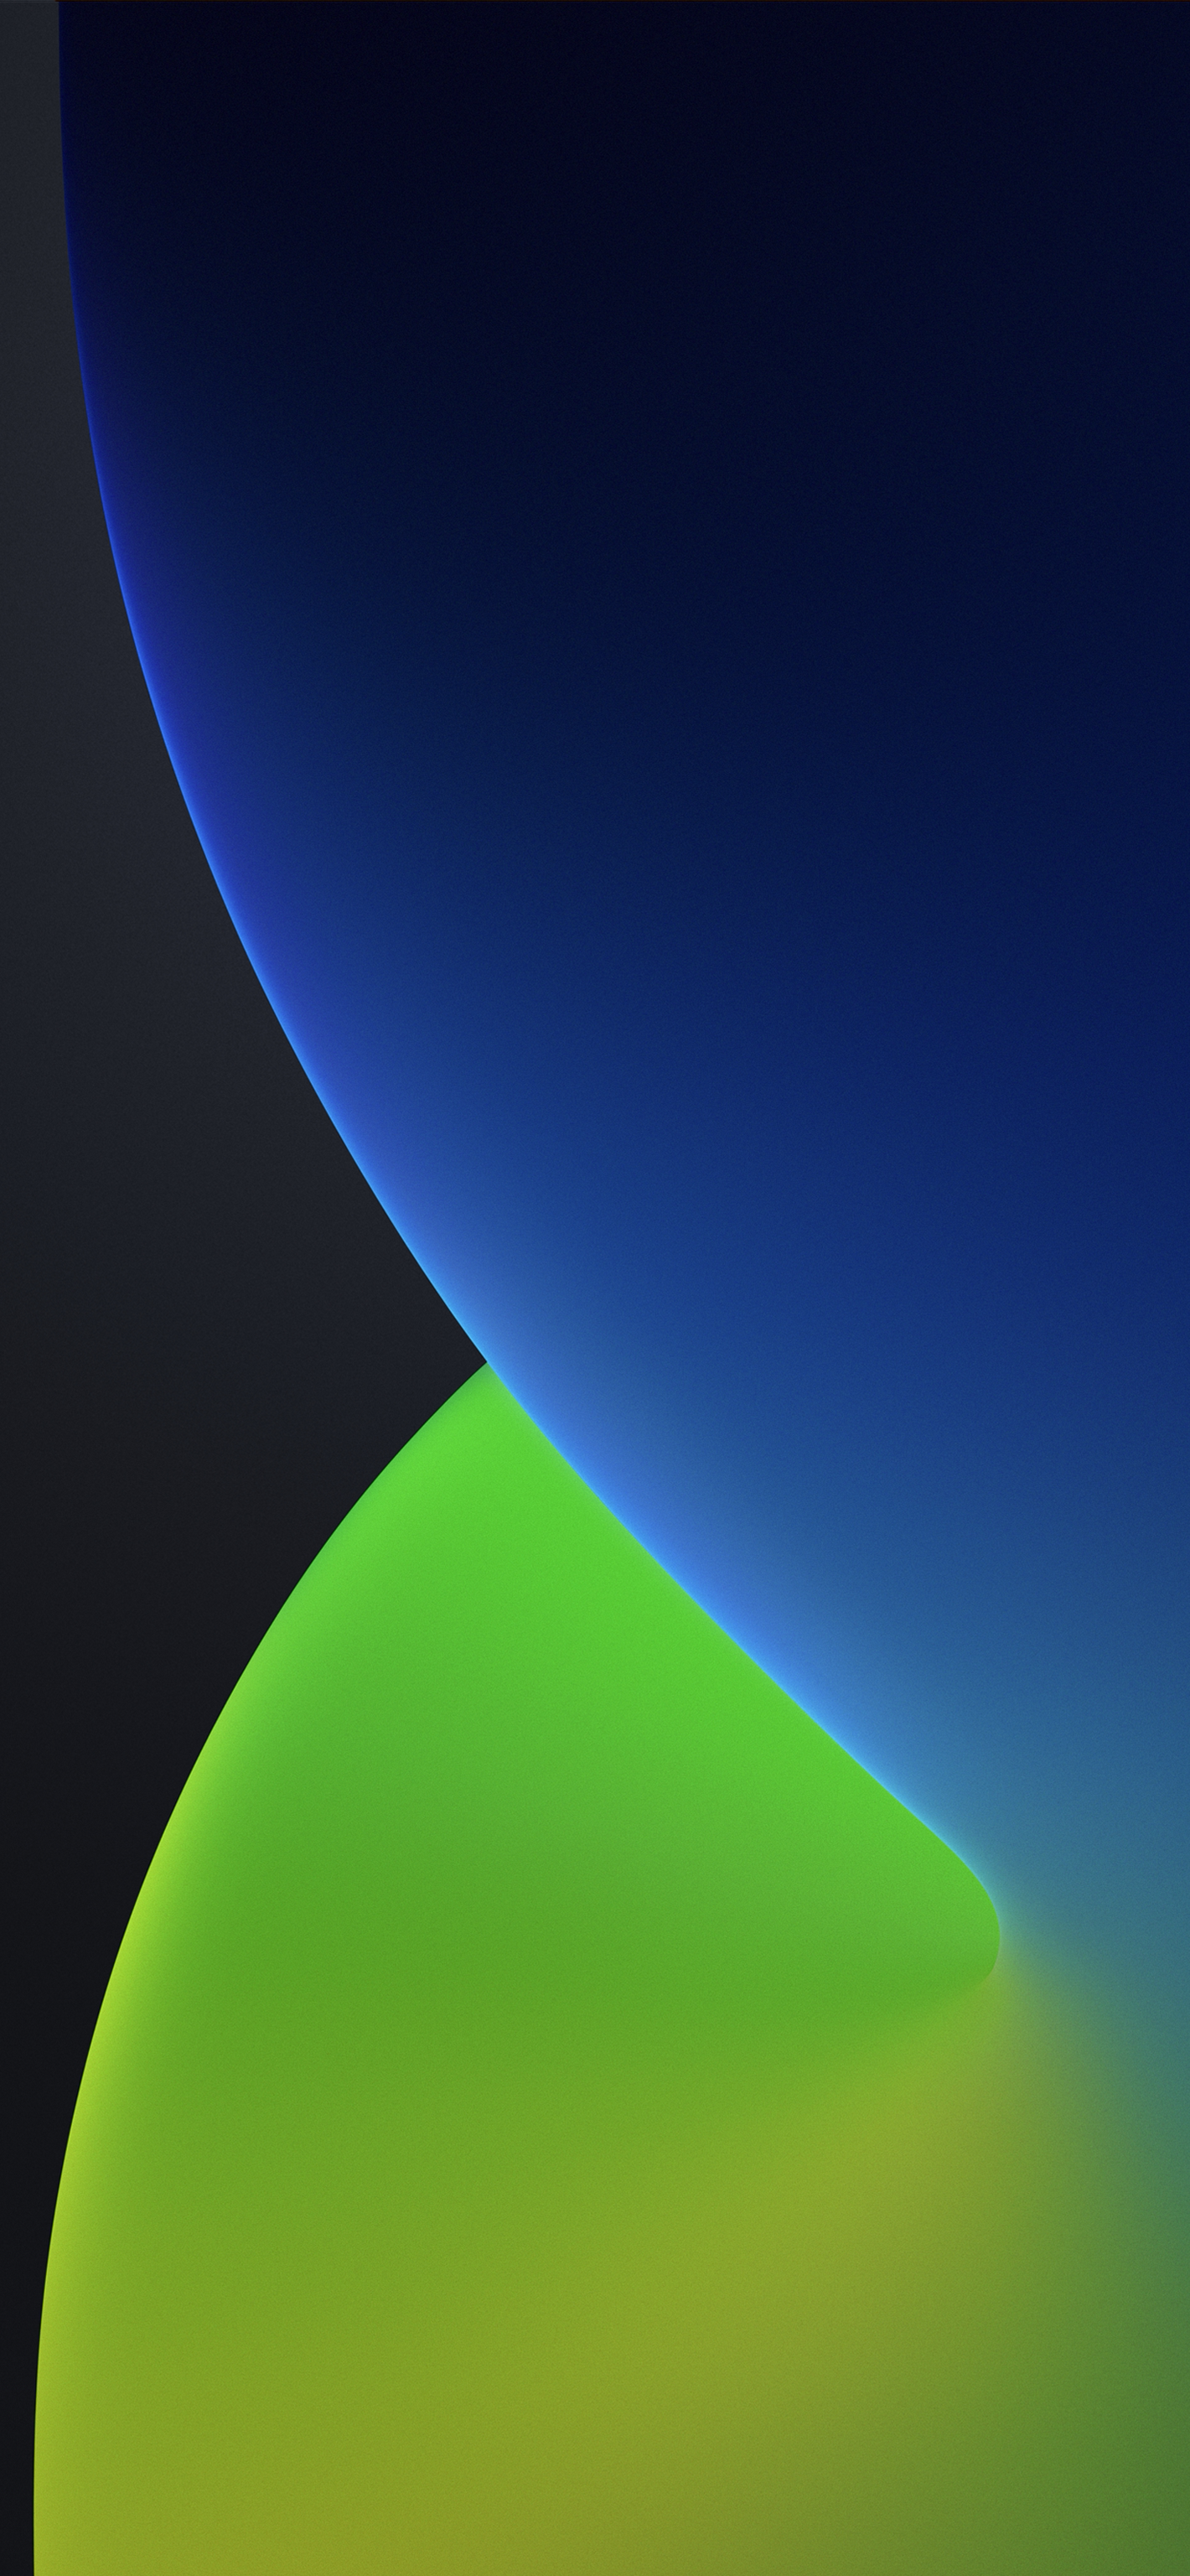 iOS 14 Wallpaper YTECHB Exclusive in 2020 Iphone wallpaper ios 1420x3073